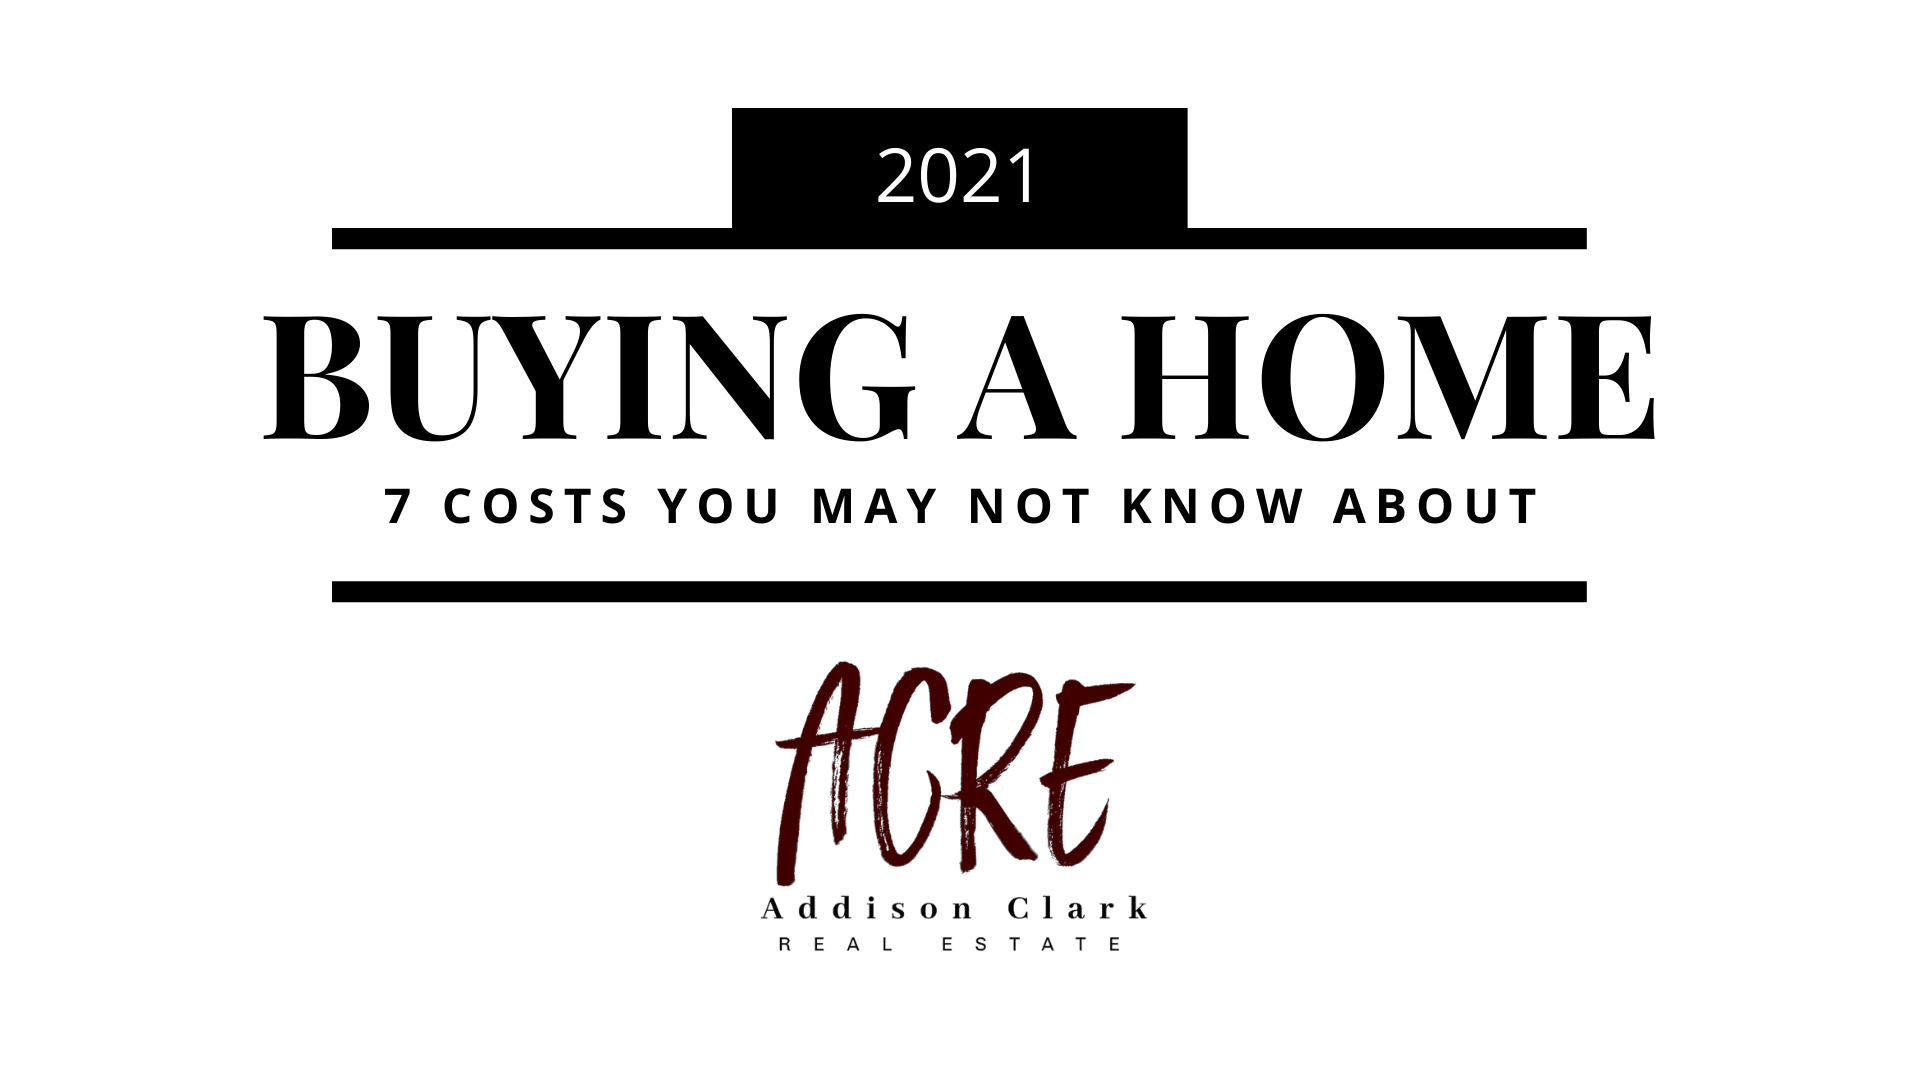 7 costs involved with buying a home